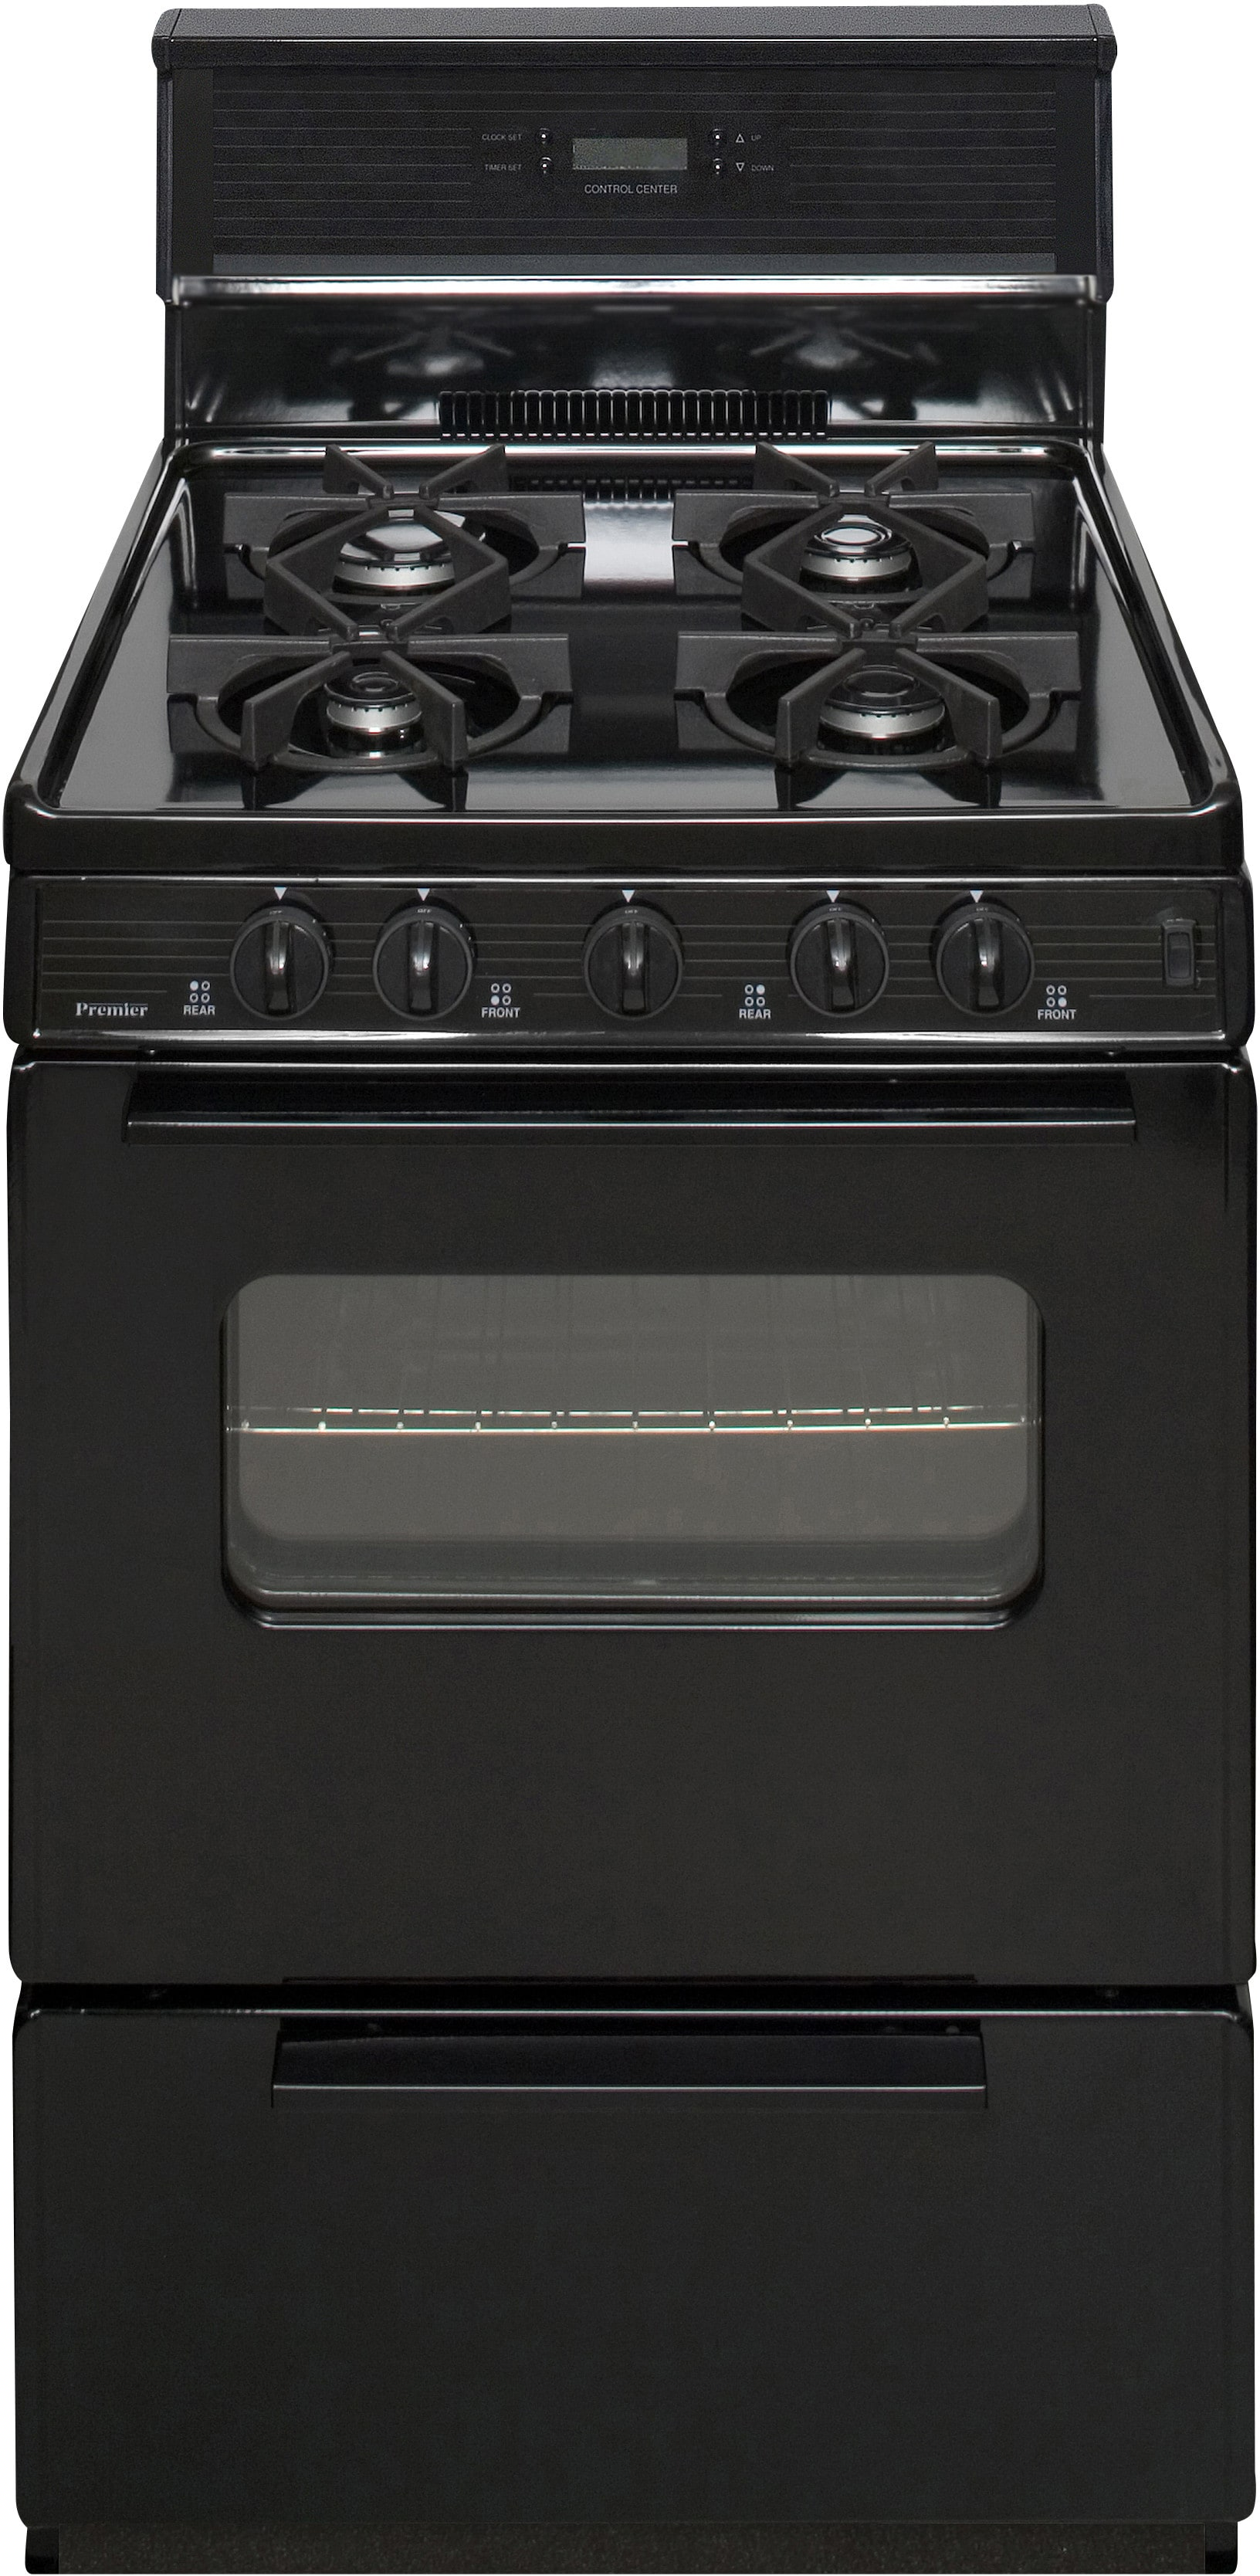 Uncategorized Premier Range Kitchen Appliances premier sjk240bp 24 inch freestanding gas range with 4 sealed burners electronic ignition 17000 btu oven burner clock